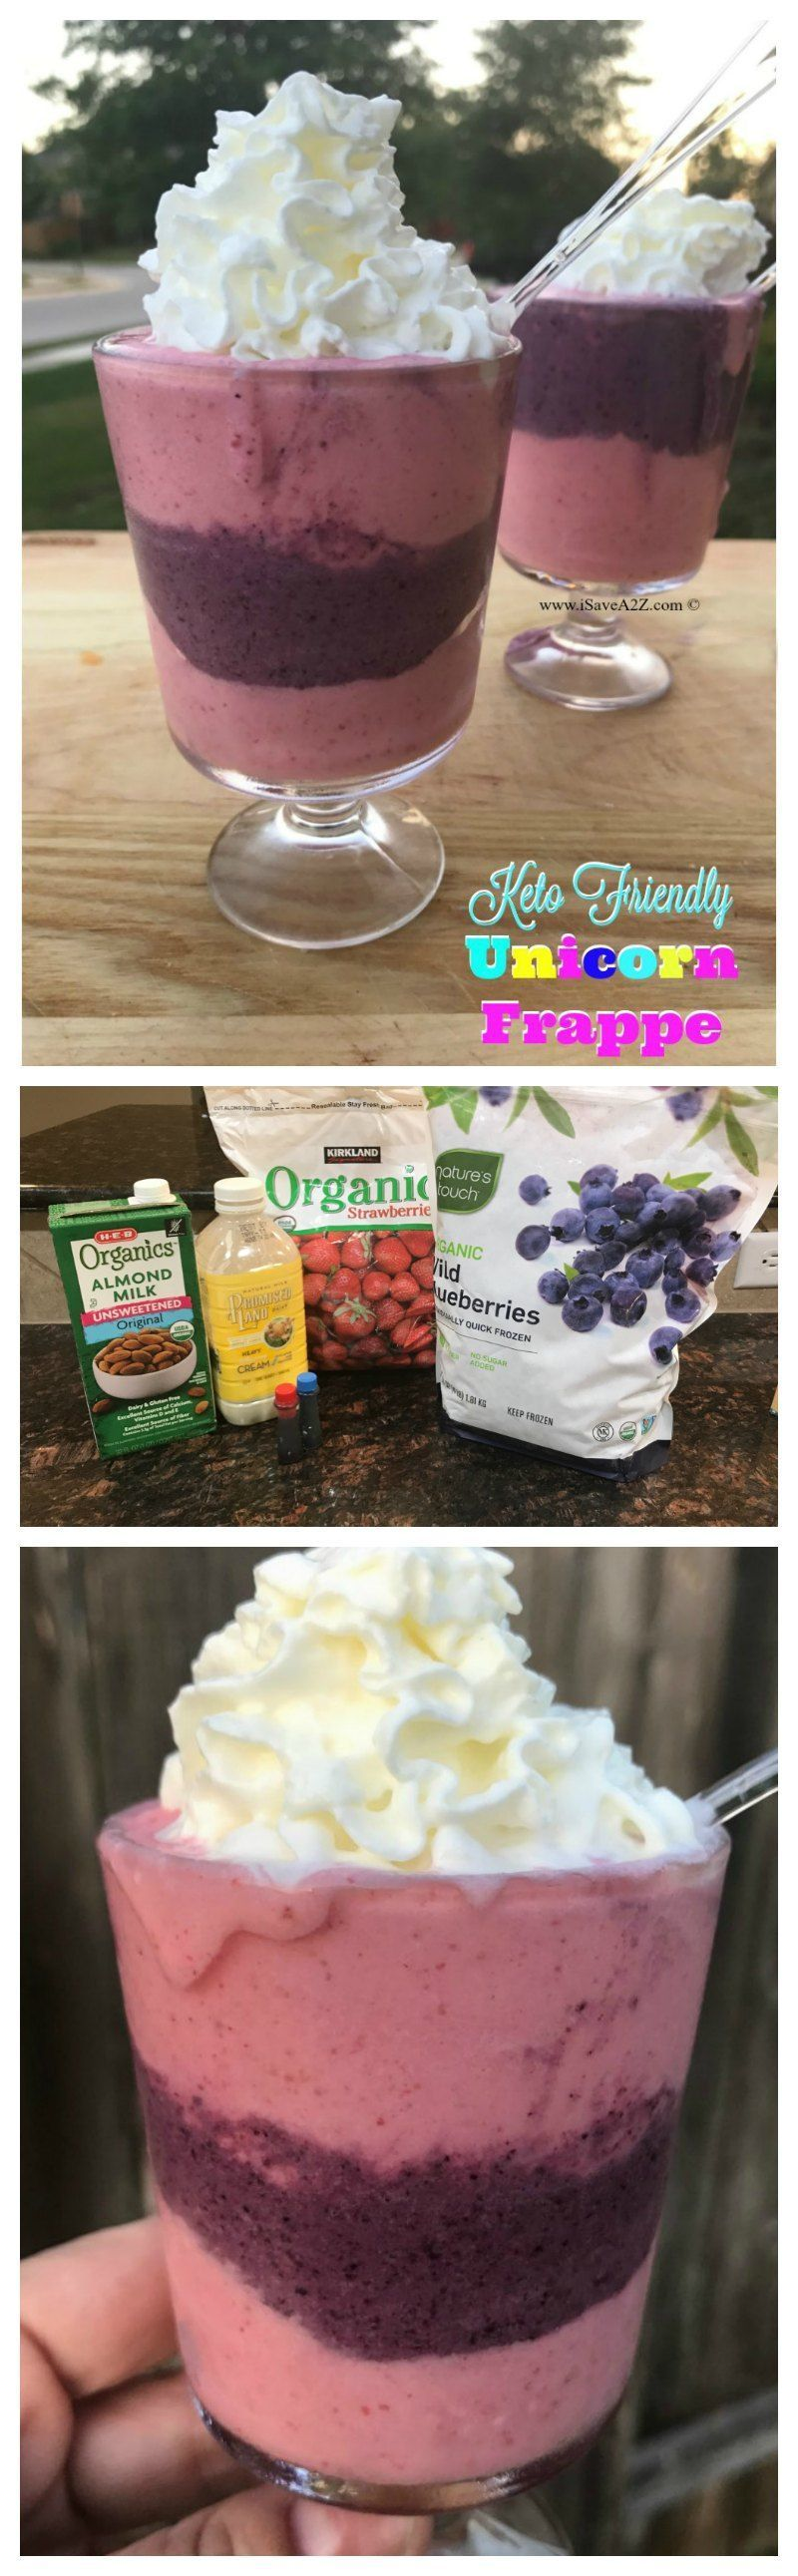 Keto Friendly and Low Carb Unicorn Frappuccino #ketofrappucinostarbucks Keto Friendly and Low Carb Unicorn Frappuccino Recipe (Starbucks Copycat Recipe) #ketofrappucinostarbucks Keto Friendly and Low Carb Unicorn Frappuccino #ketofrappucinostarbucks Keto Friendly and Low Carb Unicorn Frappuccino Recipe (Starbucks Copycat Recipe) #ketofrappucinostarbucks